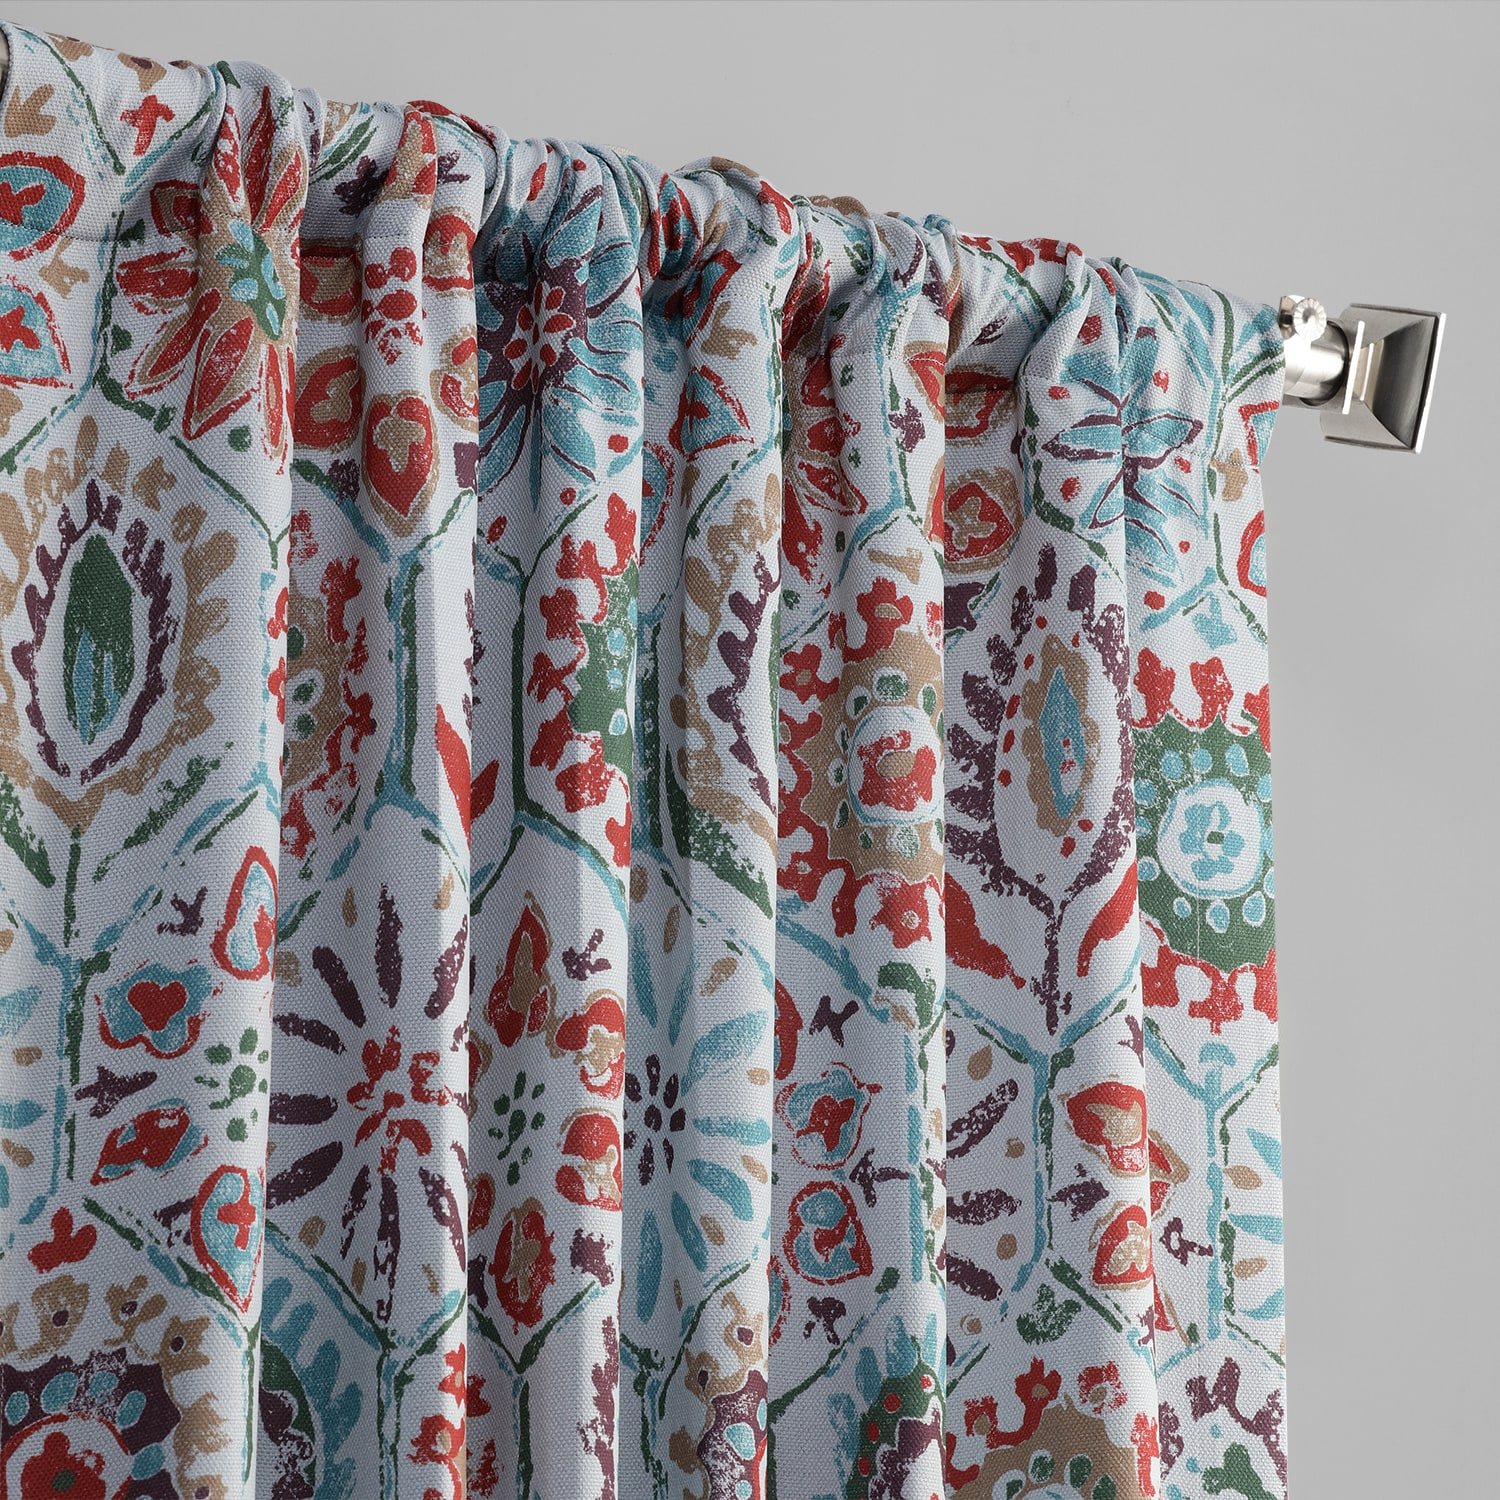 Rio Multi Printed Linen Textured Blackout Curtain